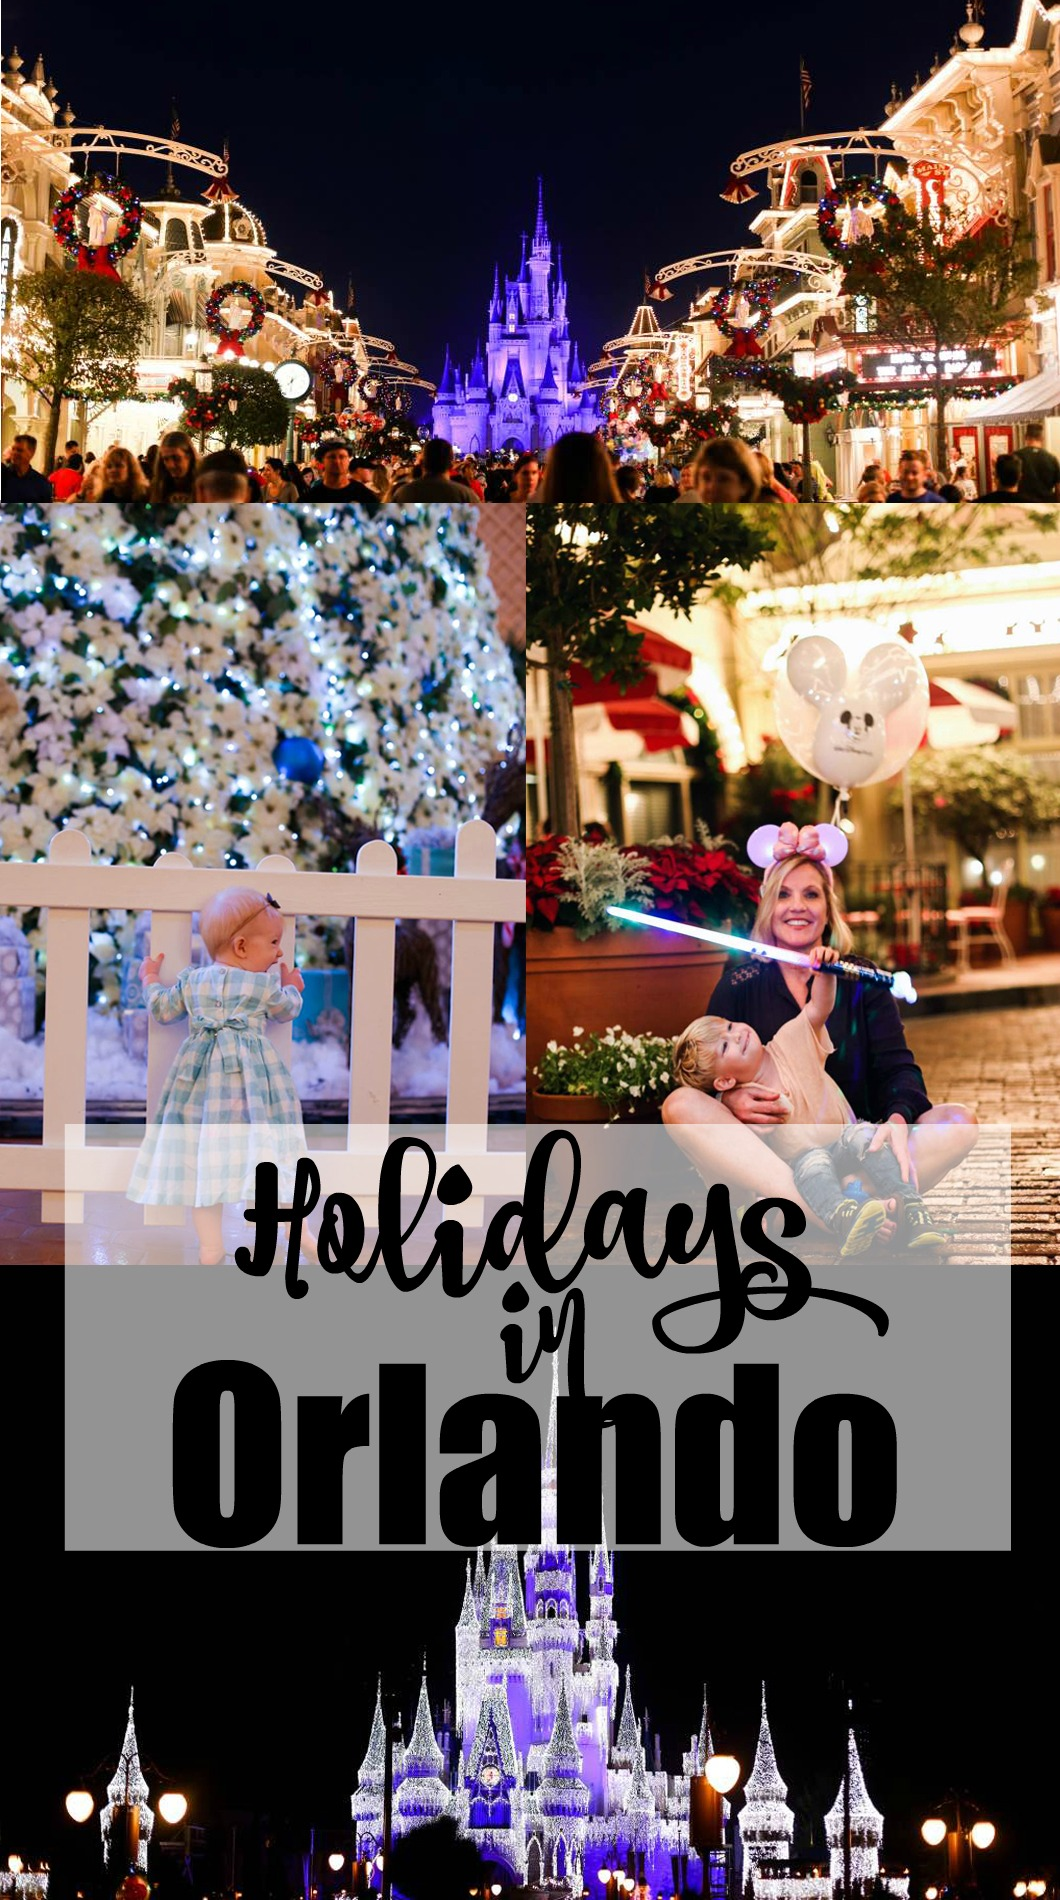 Holidays in Orlando - Holiday Attractions in Orlando by Atlanta travel blogger Happily Hughes